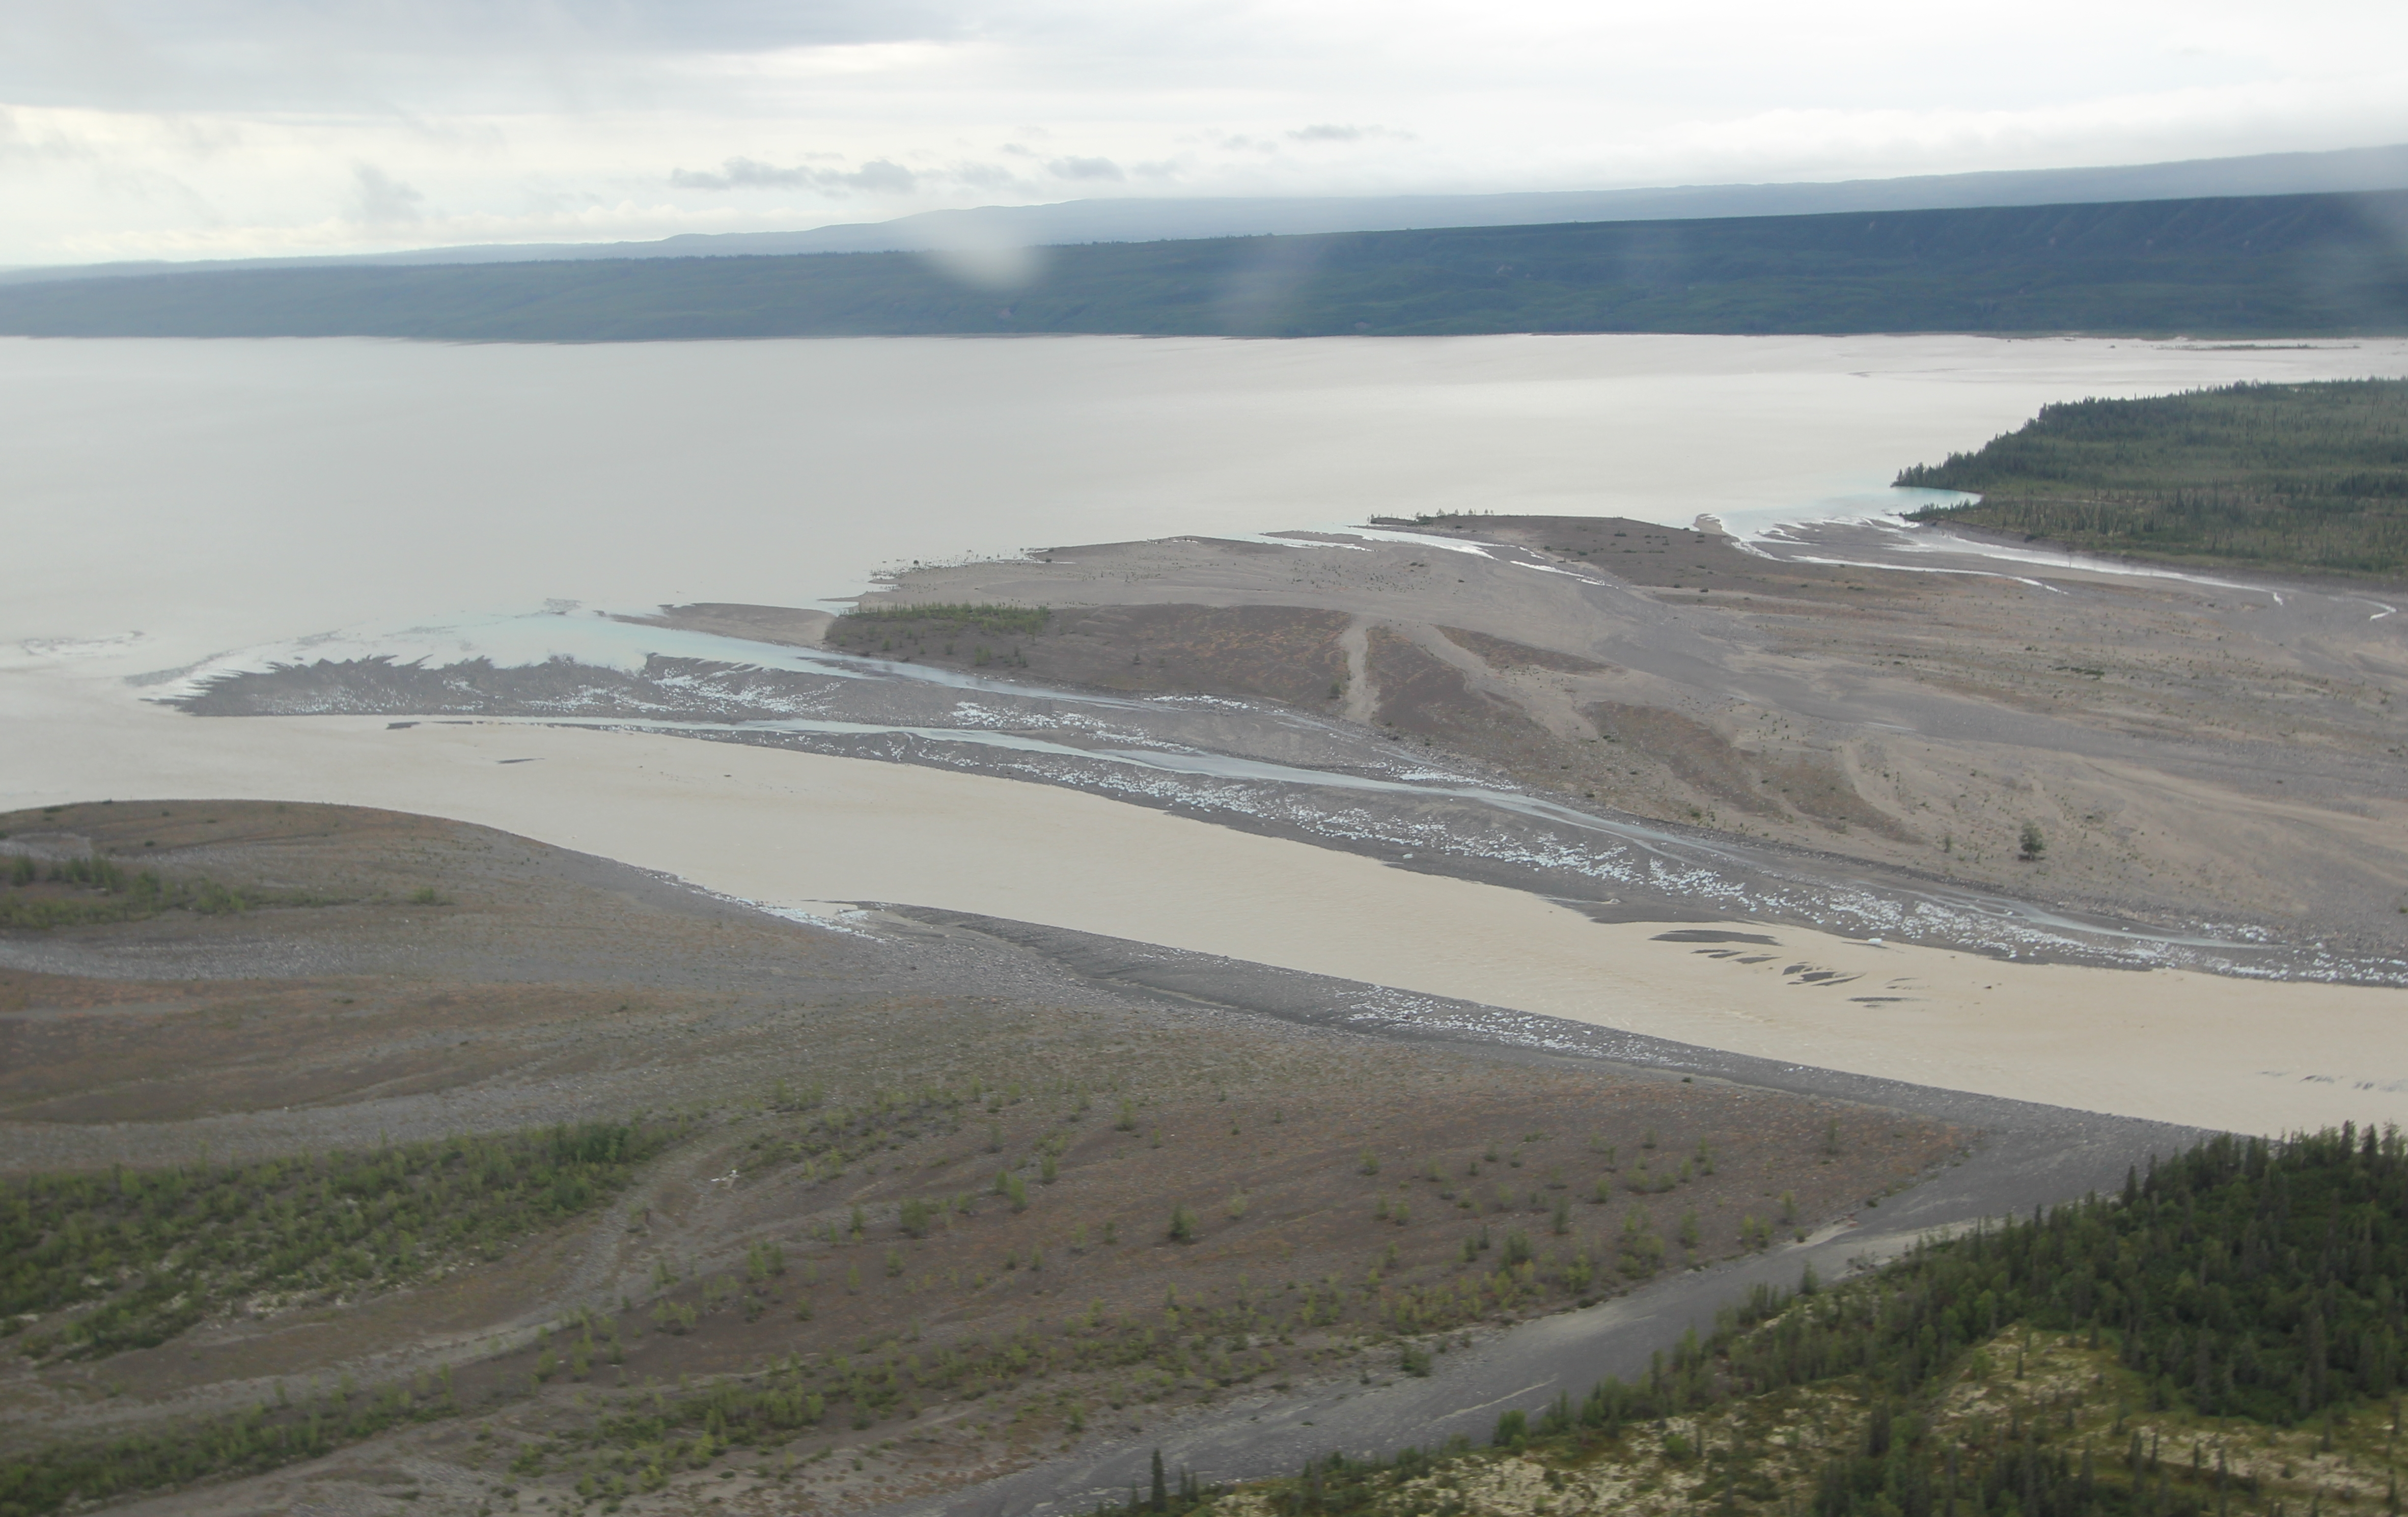 The trees at the periphery of the lake had been inundated by a rapid expansion of the water level and, closer to the, land in front of the Glacier, there were boulders of blue ice littering the banks of the principal northern riverine channel and braided streams flowing into the lake.